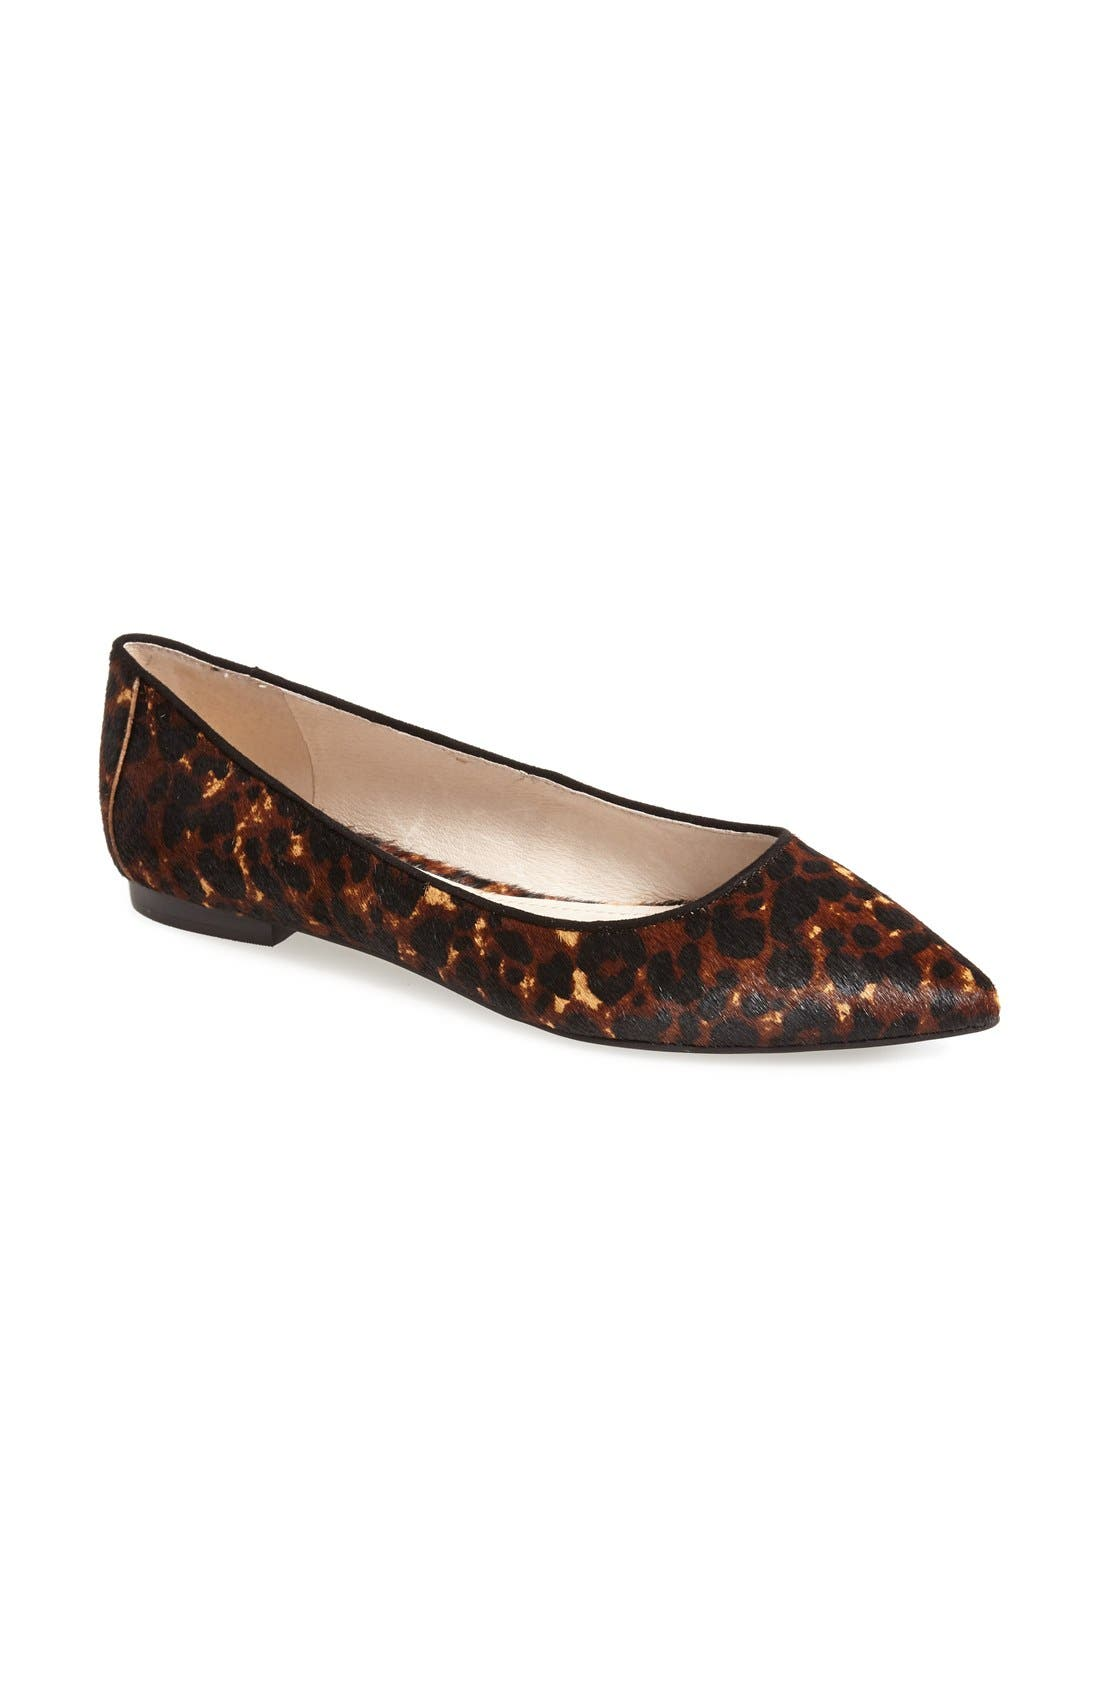 Main Image - Vince Camuto 'Hasse' Pointy Toe Flat (Women)